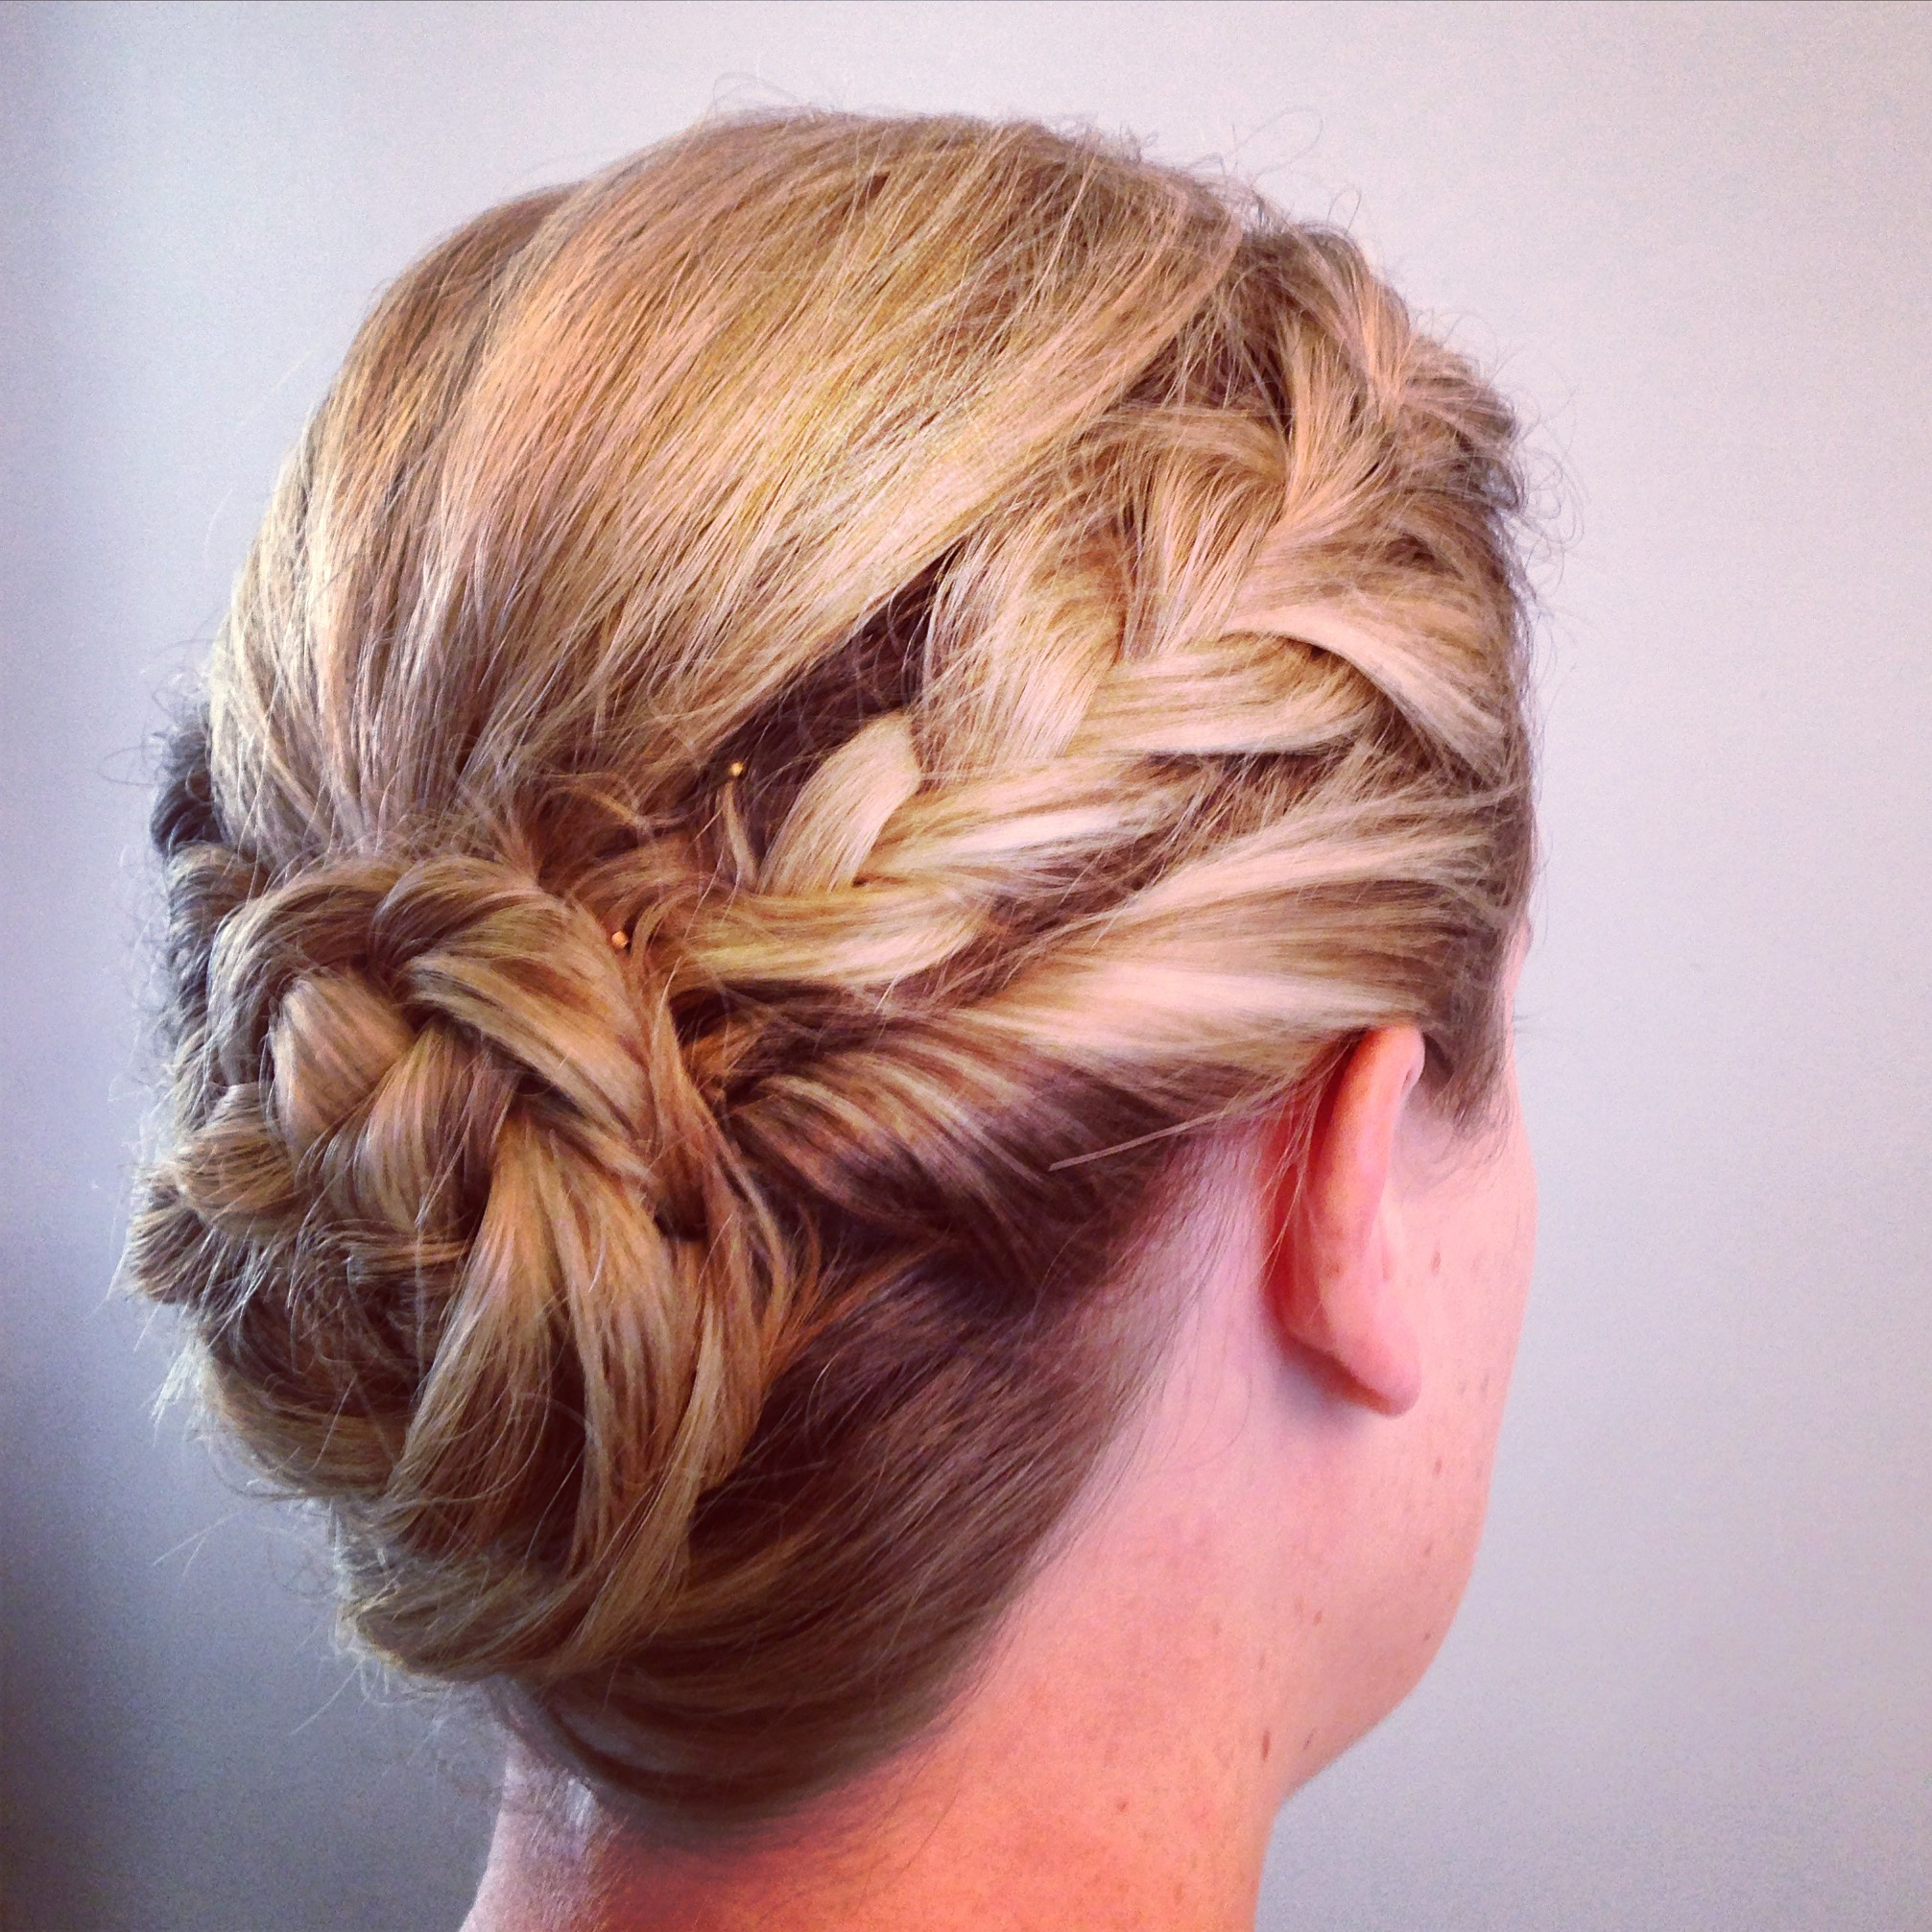 - Elegant Updo -a timeless look for special occasions.